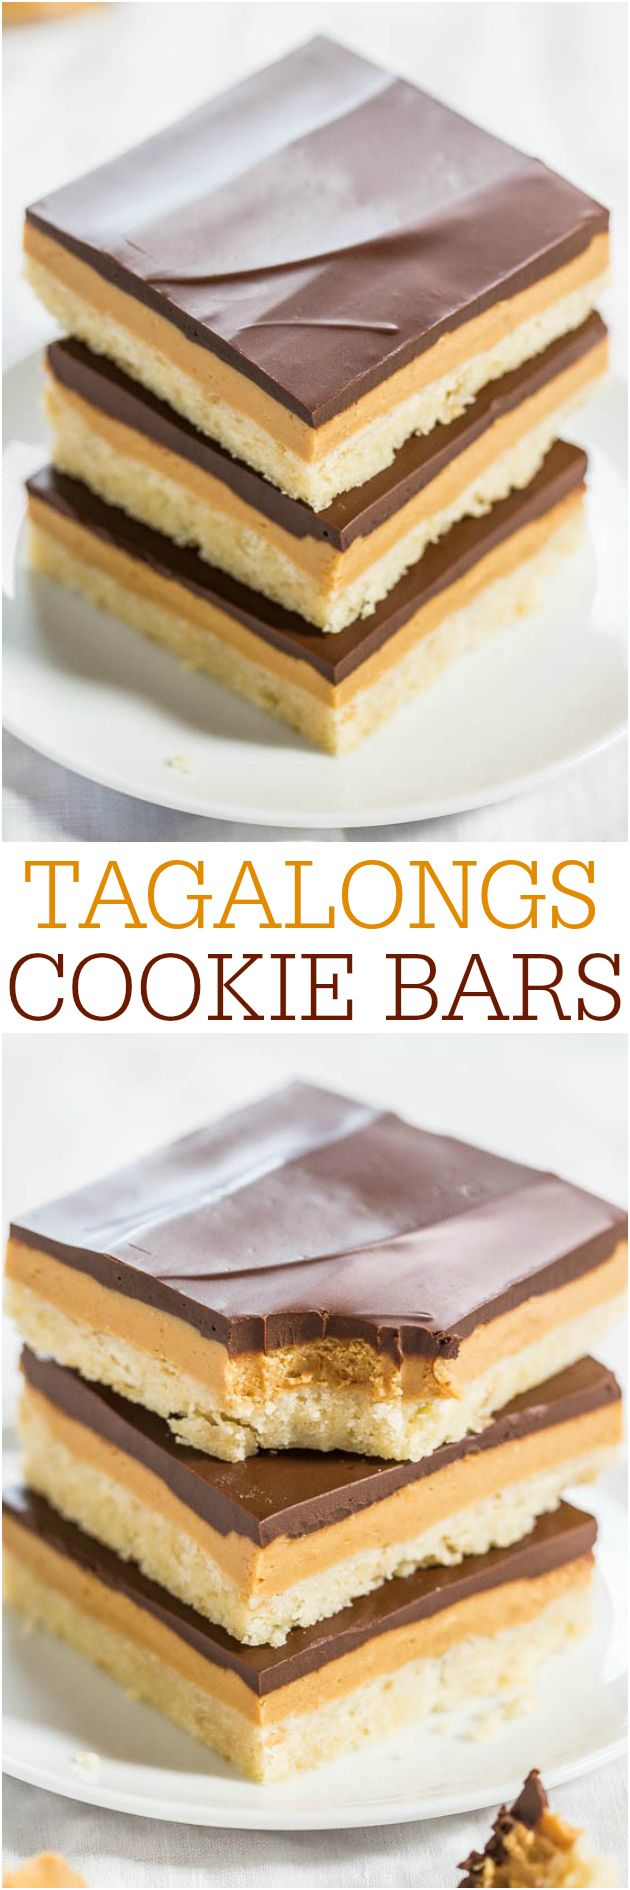 Tagalongs Cookie Bars